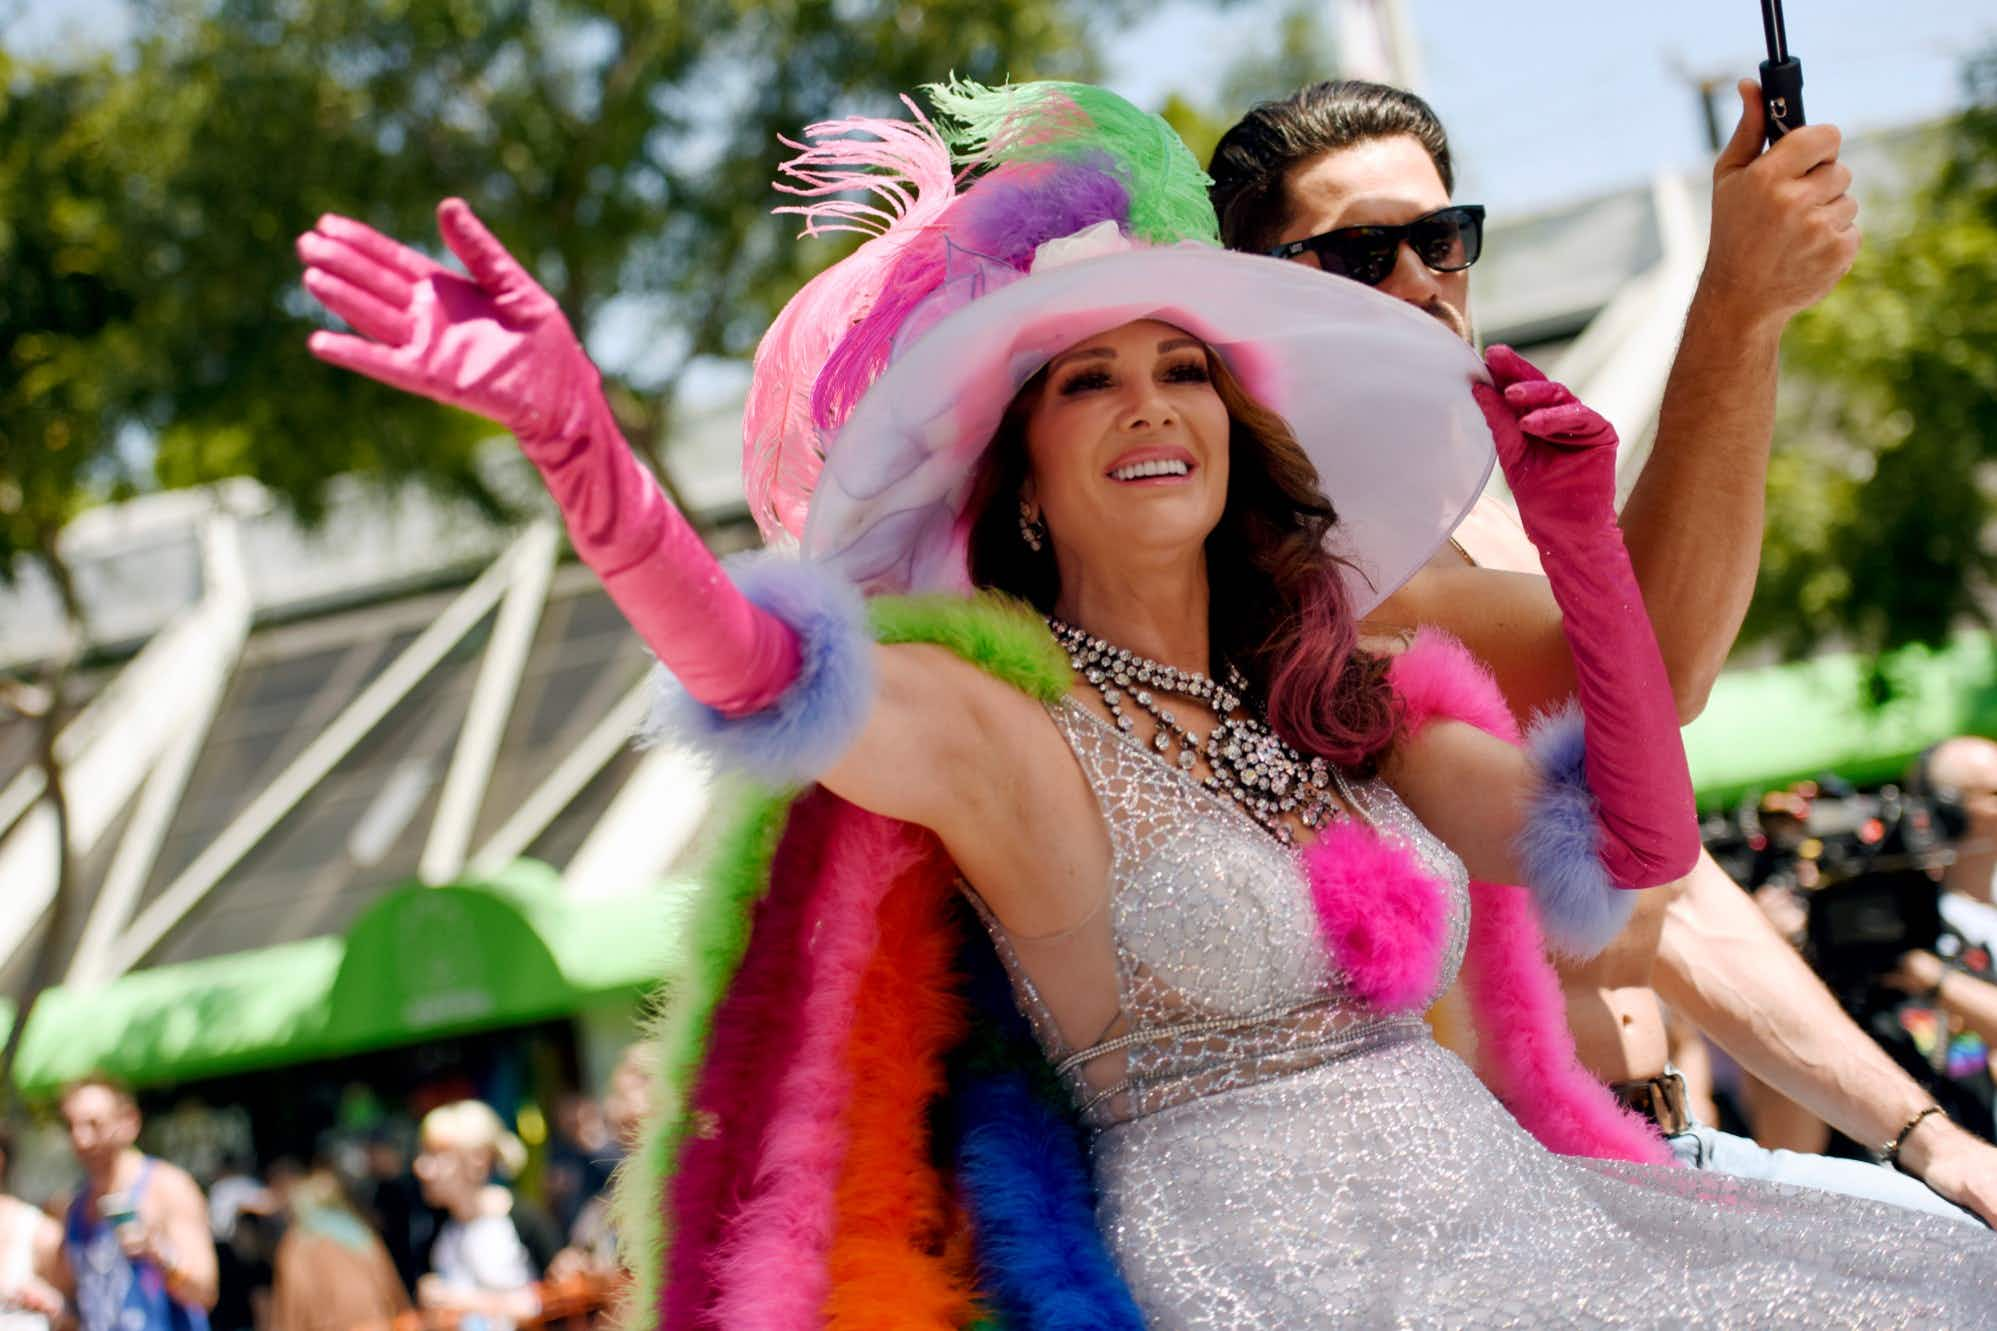 TV personality Lisa Vanderpump at the LA Pride Parade in West Hollywood, California. Image: Chelsea Guglielmino/Getty Images